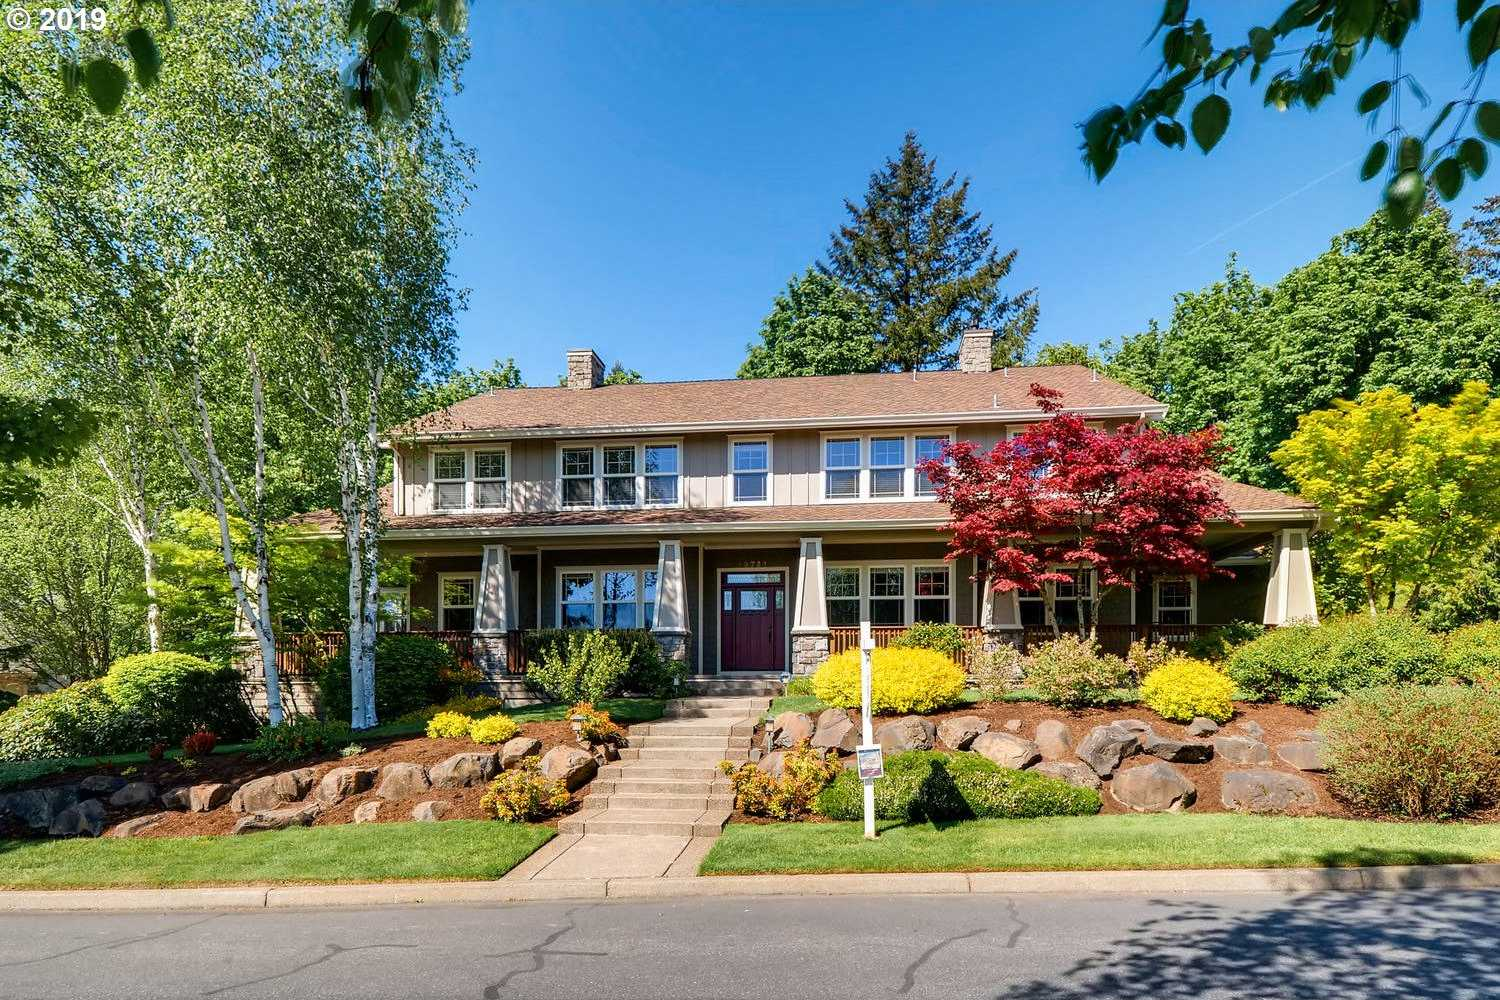 $1,175,000 - 5Br/4Ba -  for Sale in Backs To Forest Park, Portland